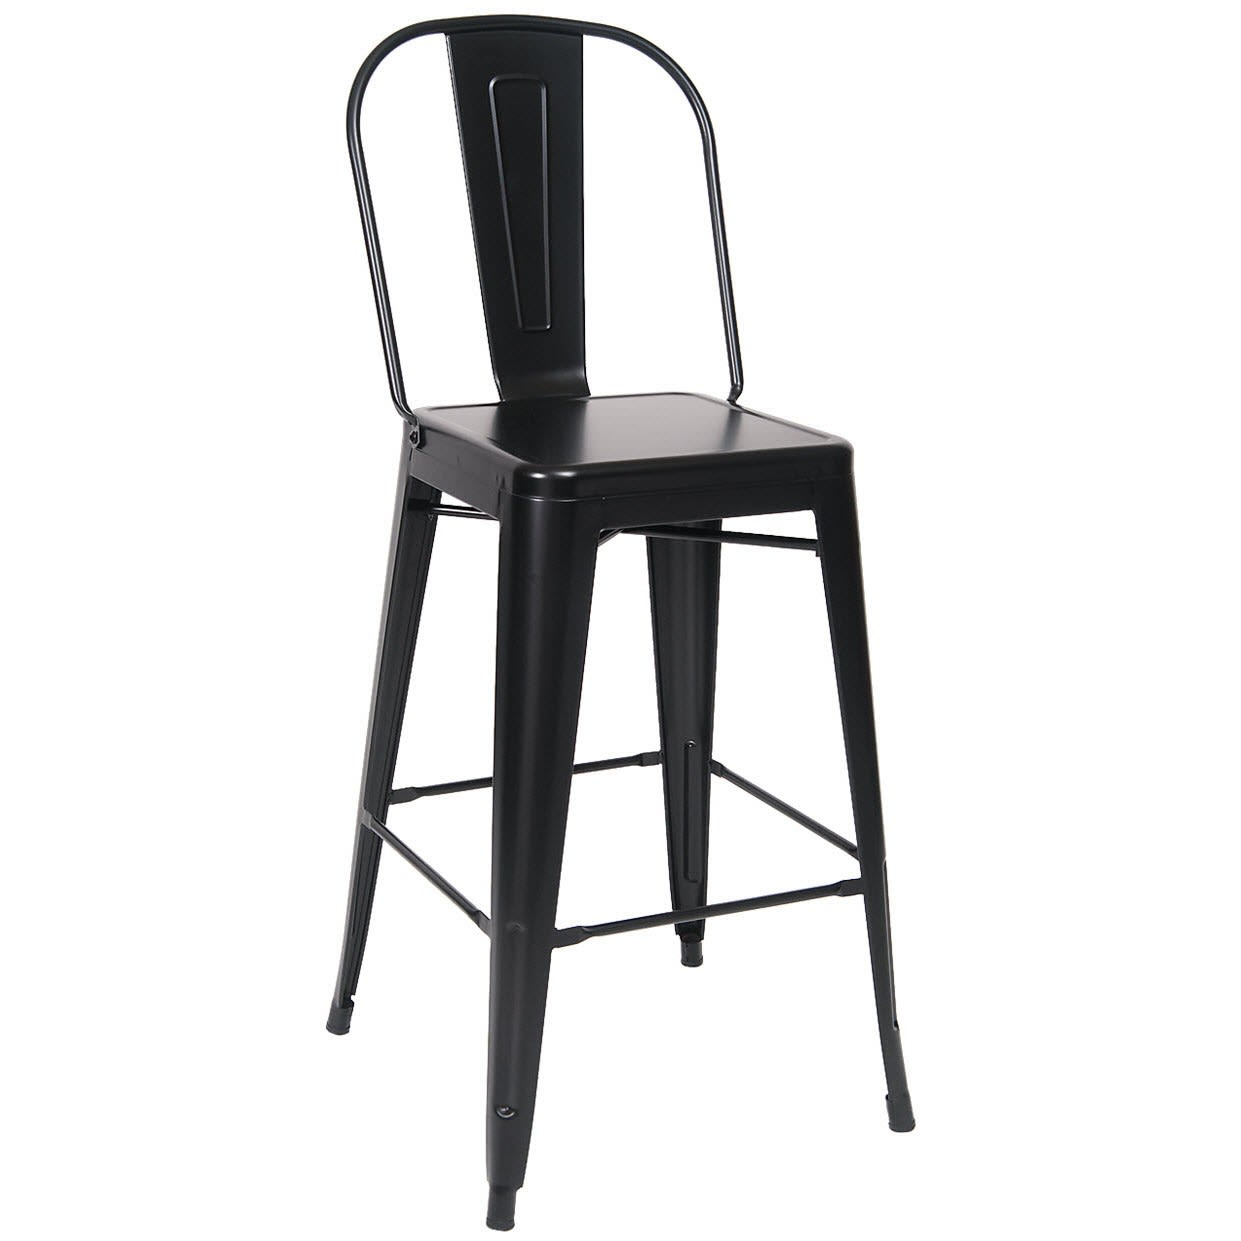 Bistro Style Metal Bar Stool in Black Finish